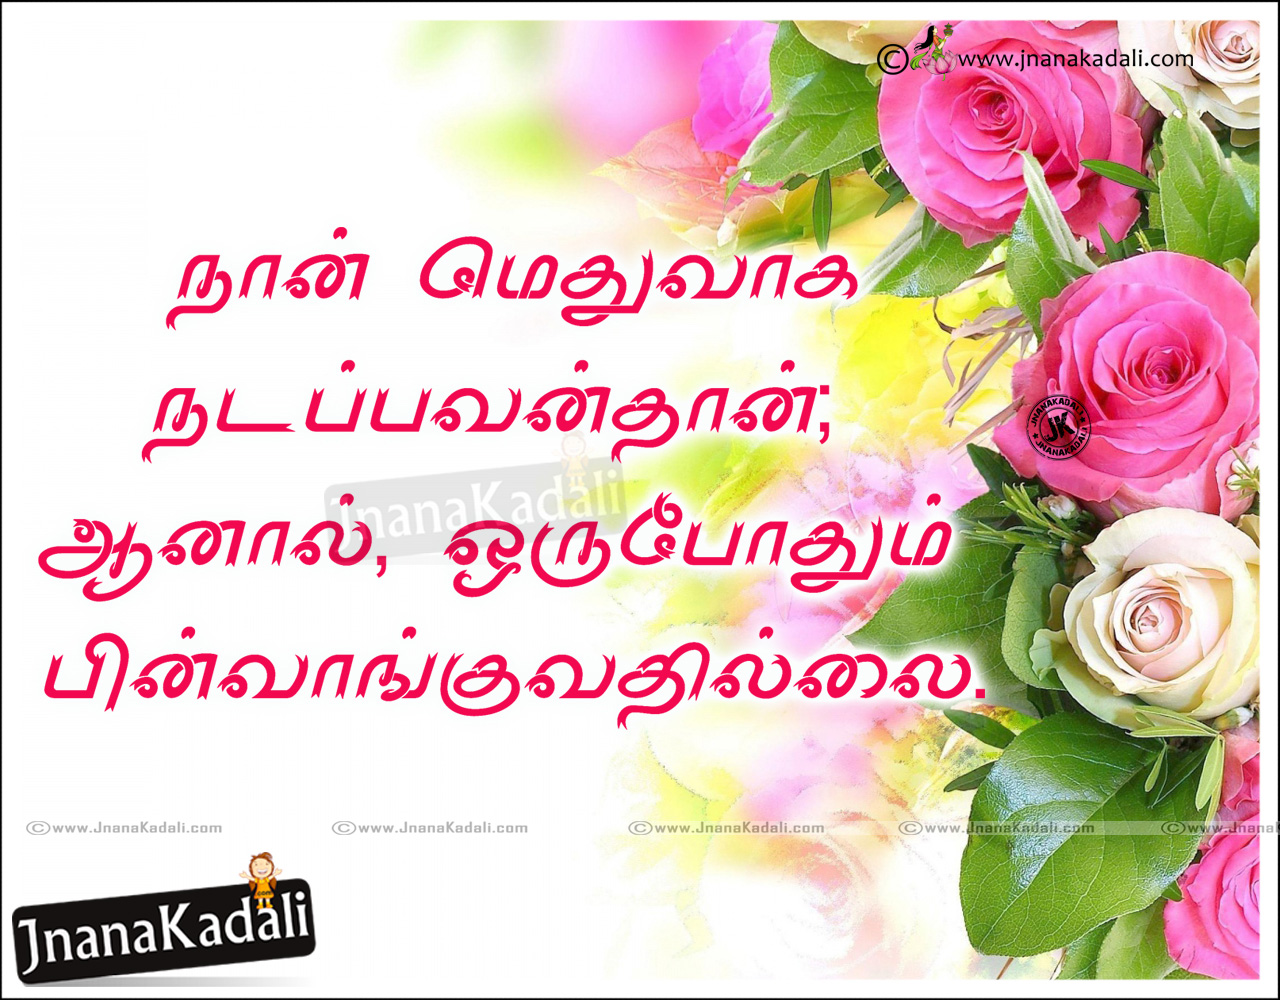 Life Inspirational Success Quotes Messages In Tamil Language Hd Wallpapers Jnana Kadali Com Telugu Quotes English Quotes Hindi Quotes Tamil Quotes Dharmasandehalu